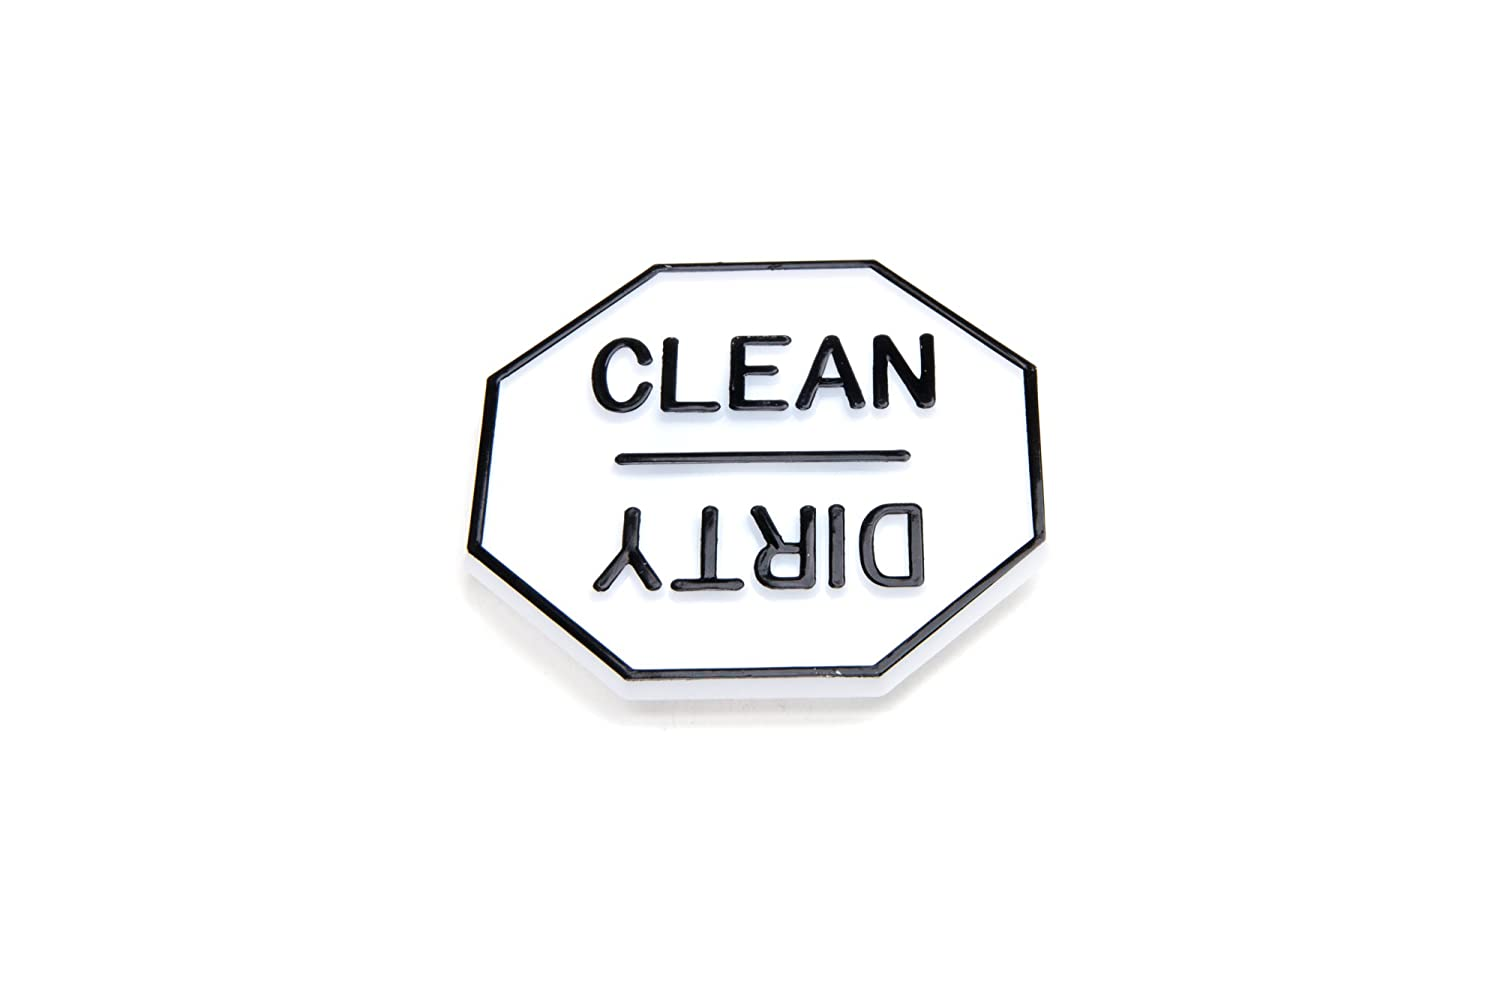 Dirty Reminder Plastic Material 5935 Fox Run Dishwasher Magnet Back Clean